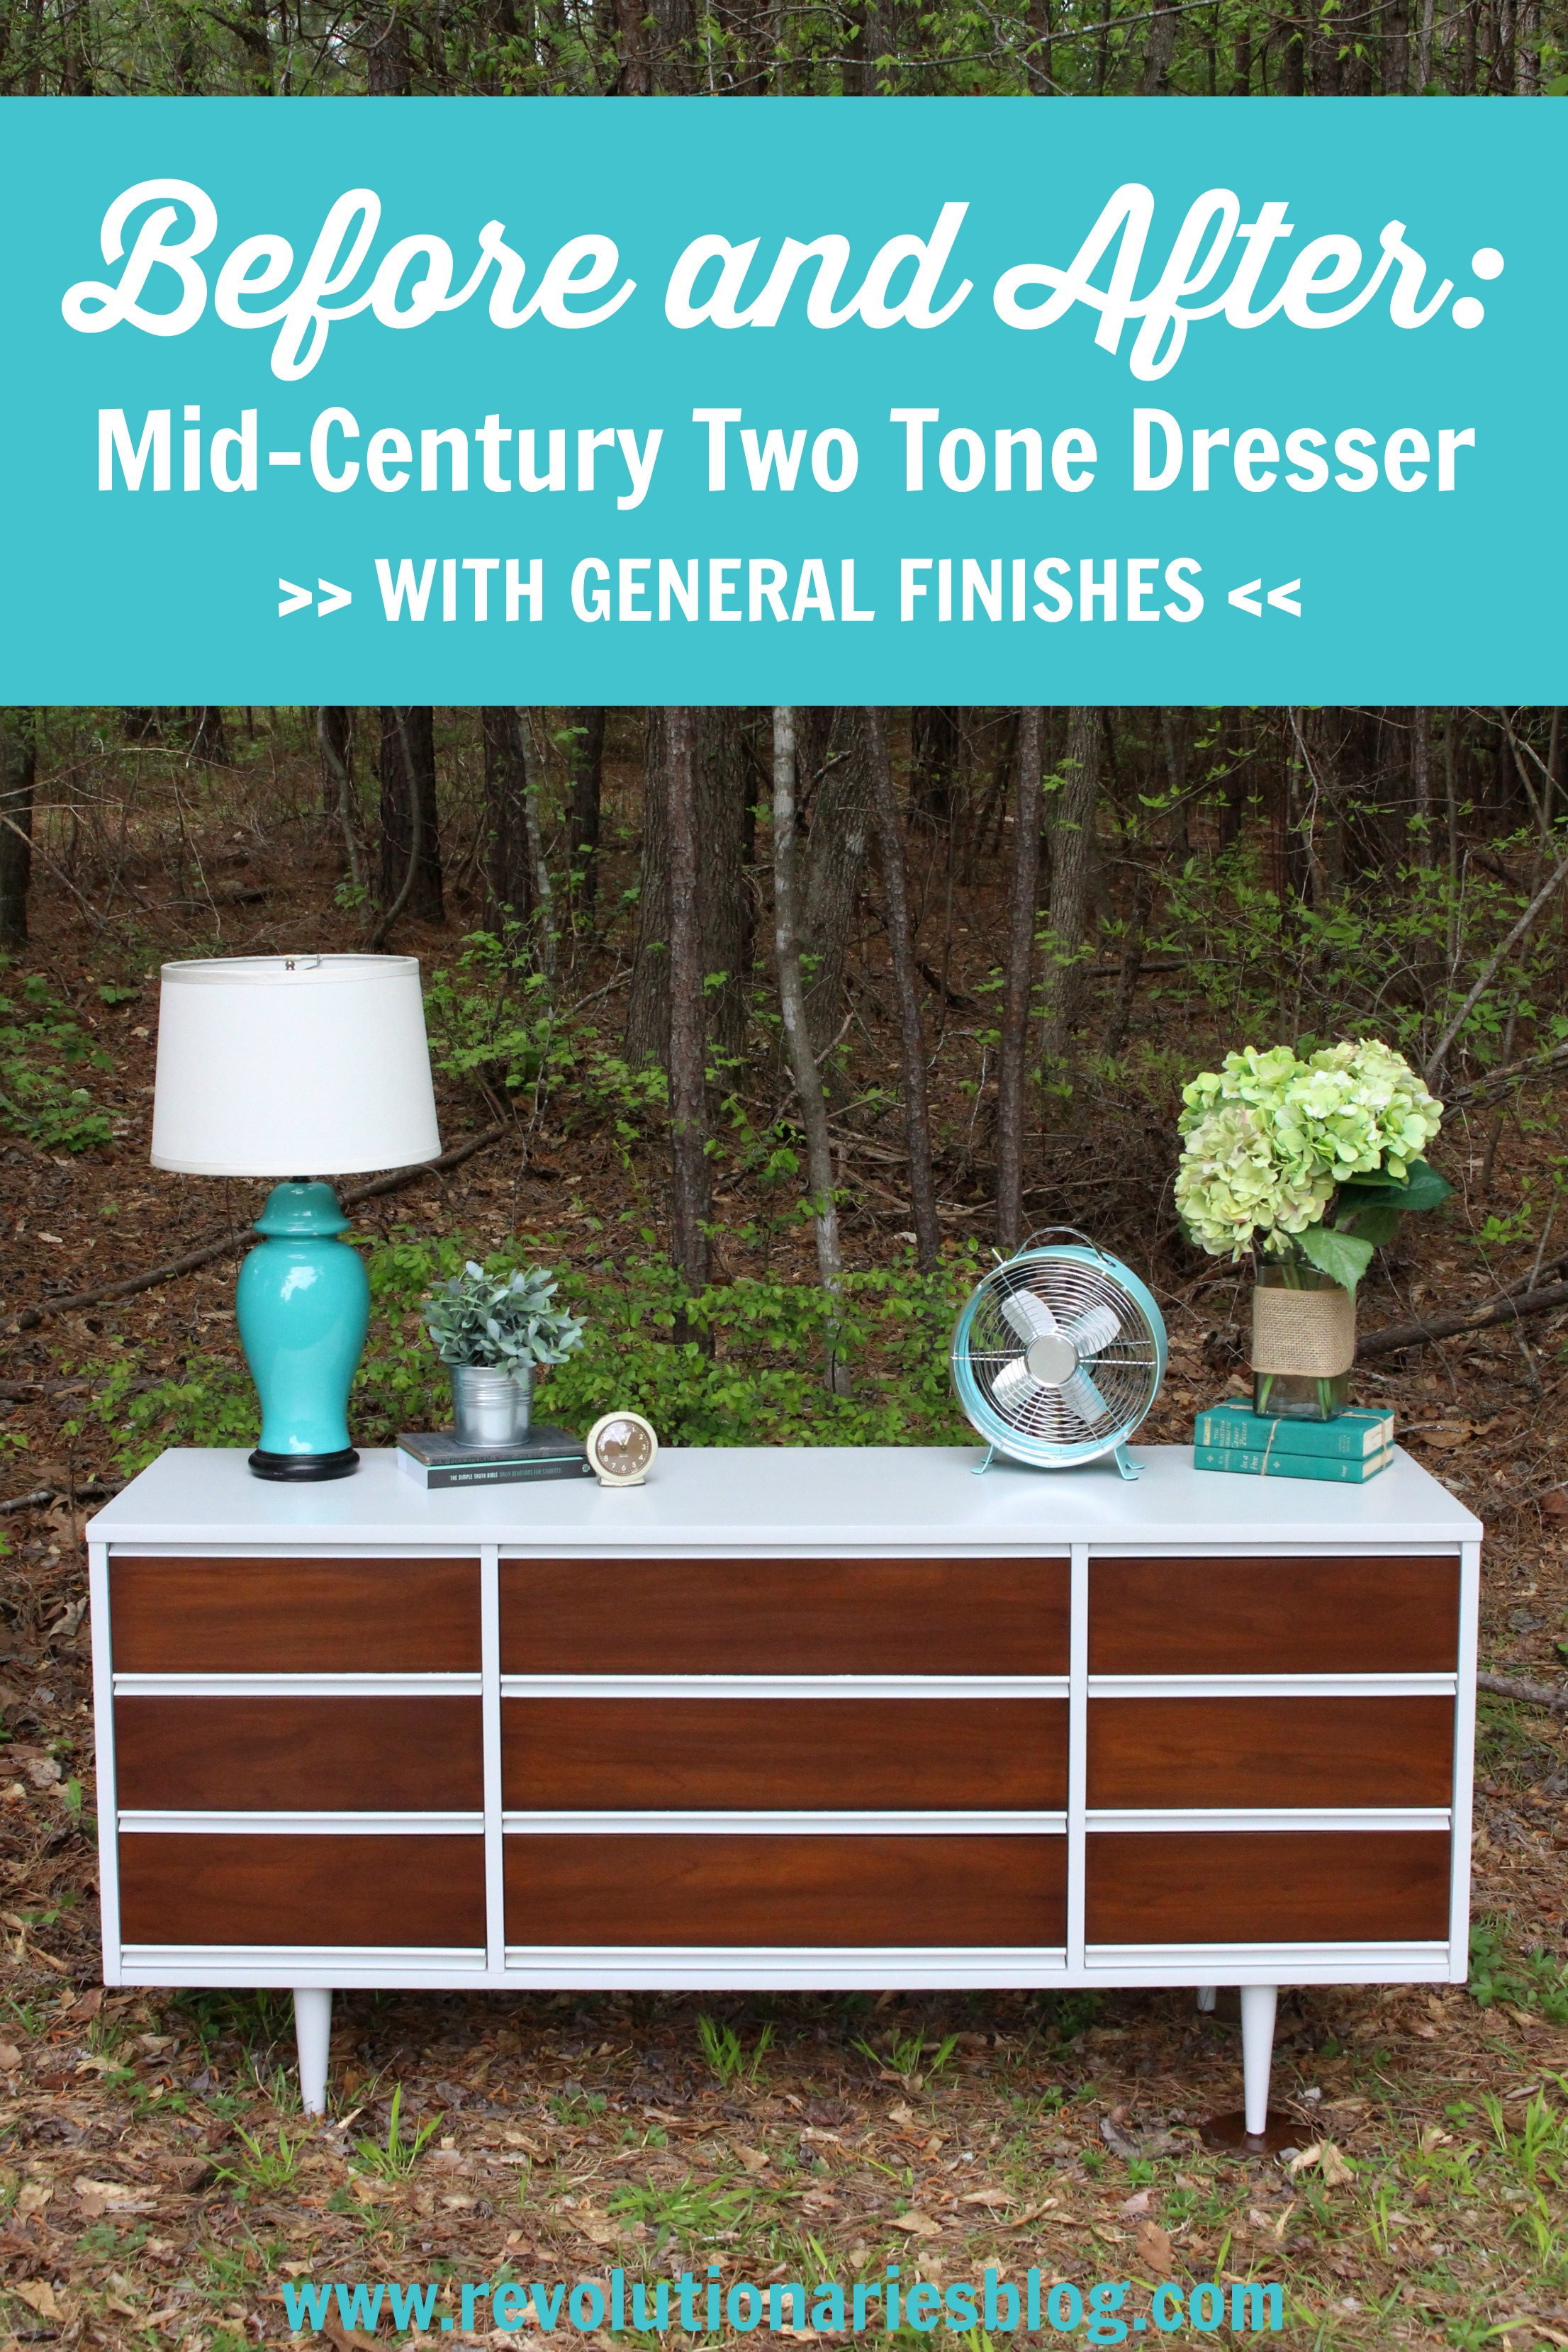 Before and After: Mid-Century Two Tone Dresser